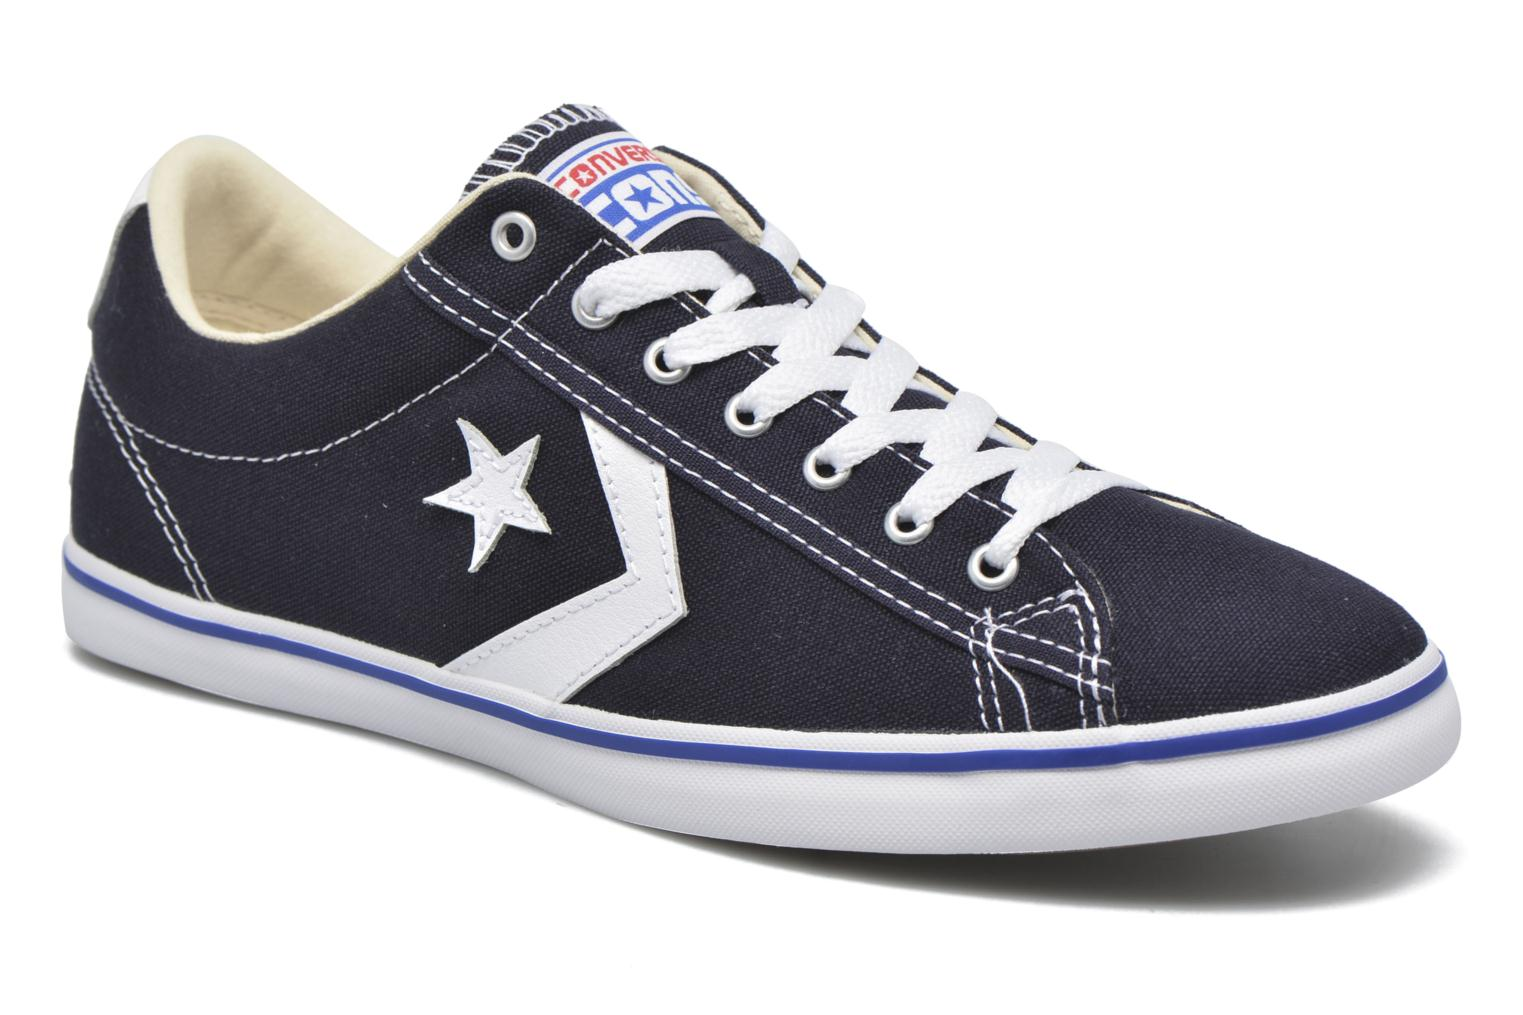 converse star player 2v cvs ox